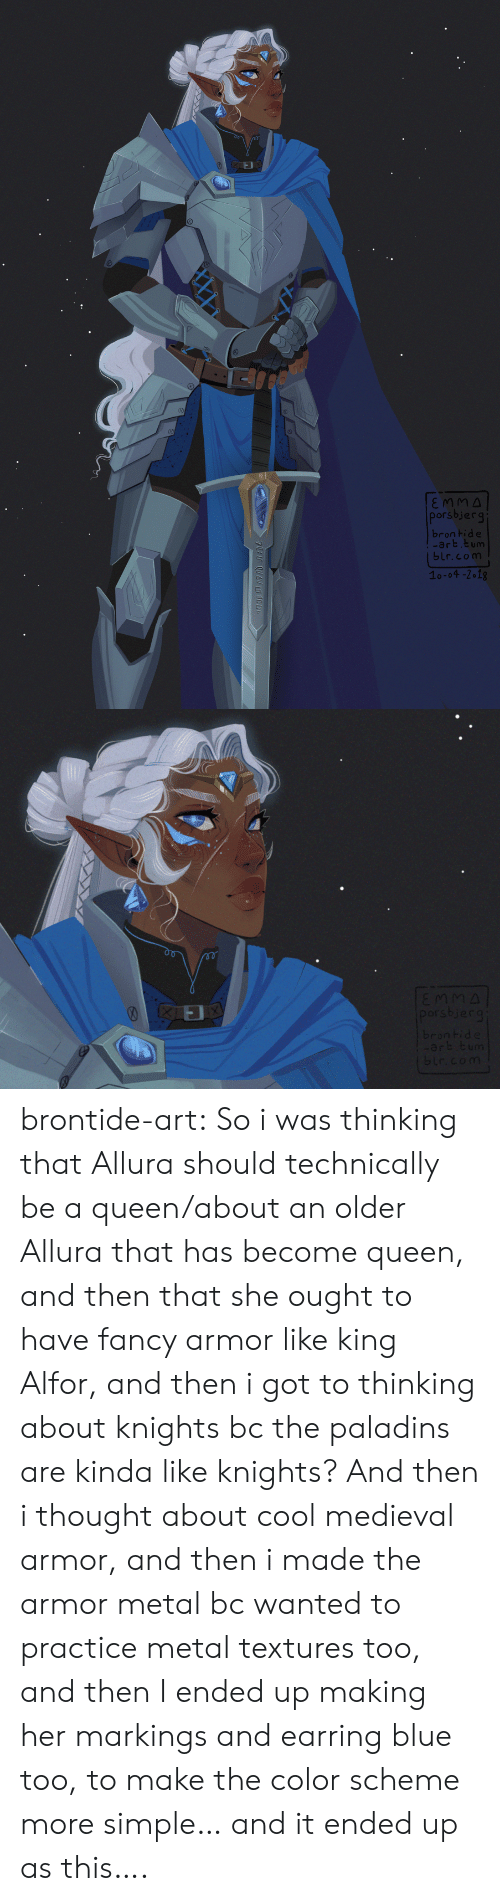 Target, Tumblr, and Queen: porsbjerg  brontid e  art.tum  blr.com  1o-04 -2 18 brontide-art: So i was thinking that Allura should technically be a queen/about an older Allura that has become queen, and then that she ought to have fancy armor like king Alfor, and then i got to thinking about knights bc the paladins are kinda like knights? And then i thought about cool medieval armor, and then i made the armor metal bc  wanted to practice metal textures too, and then I ended up making her markings and earring blue too, to make the color scheme more simple… and it ended up as this….